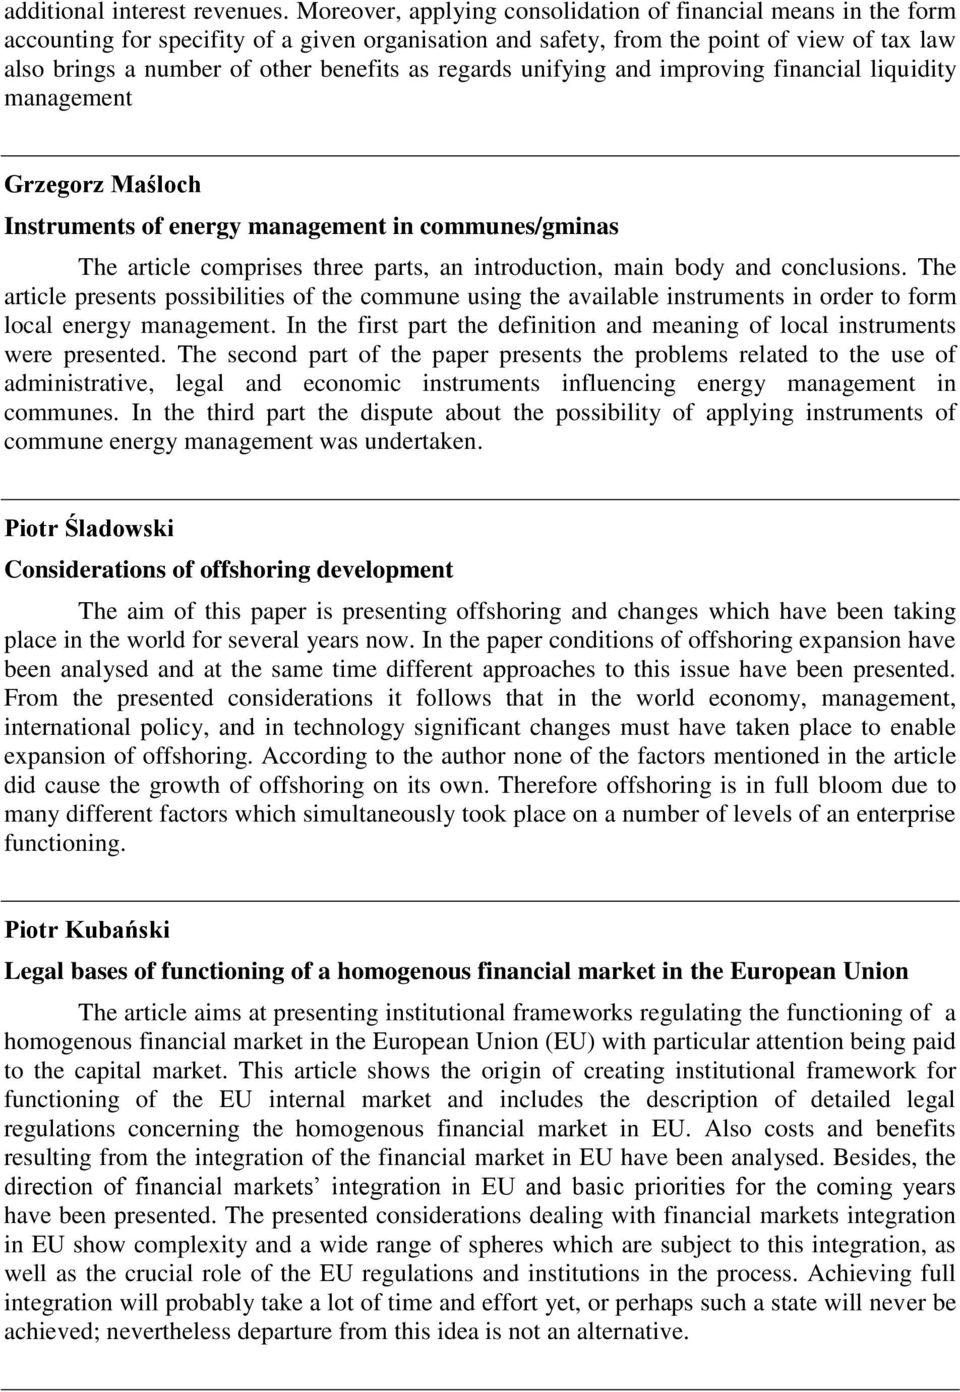 as regards unifying and improving financial liquidity management Grzegorz Maśloch Instruments of energy management in communes/gminas The article comprises three parts, an introduction, main body and